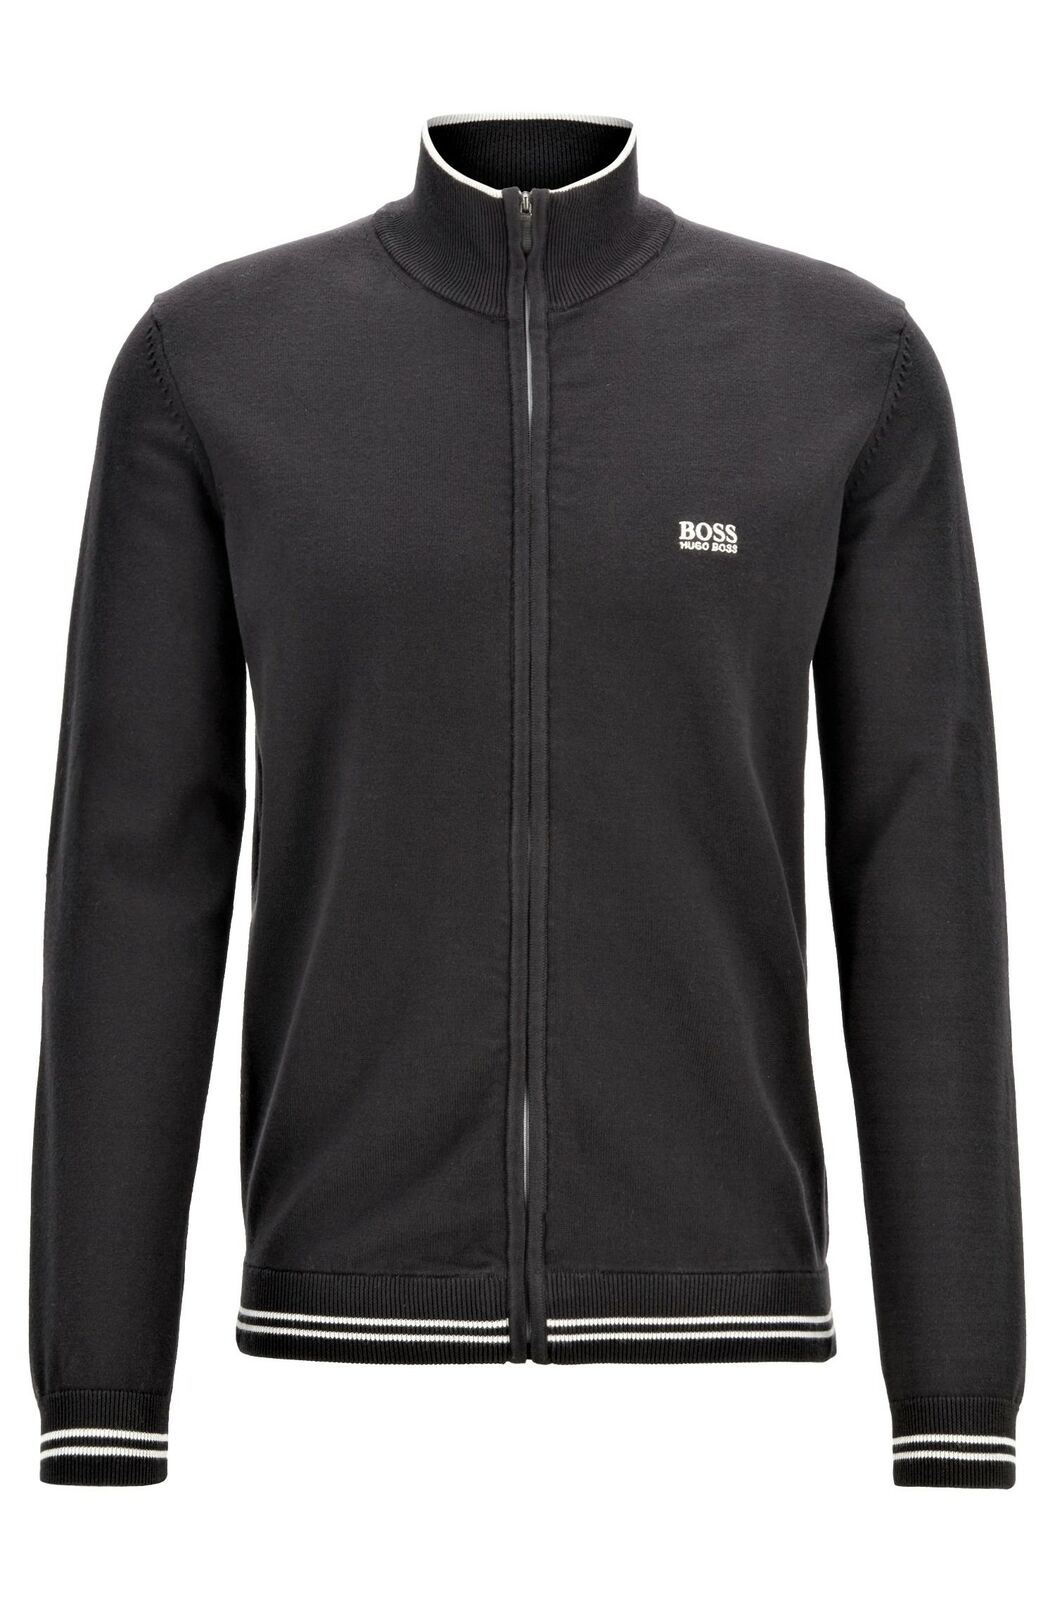 HUGO BOSS Cardigan zip profiles in contrast and details Zomex_S19 50398630